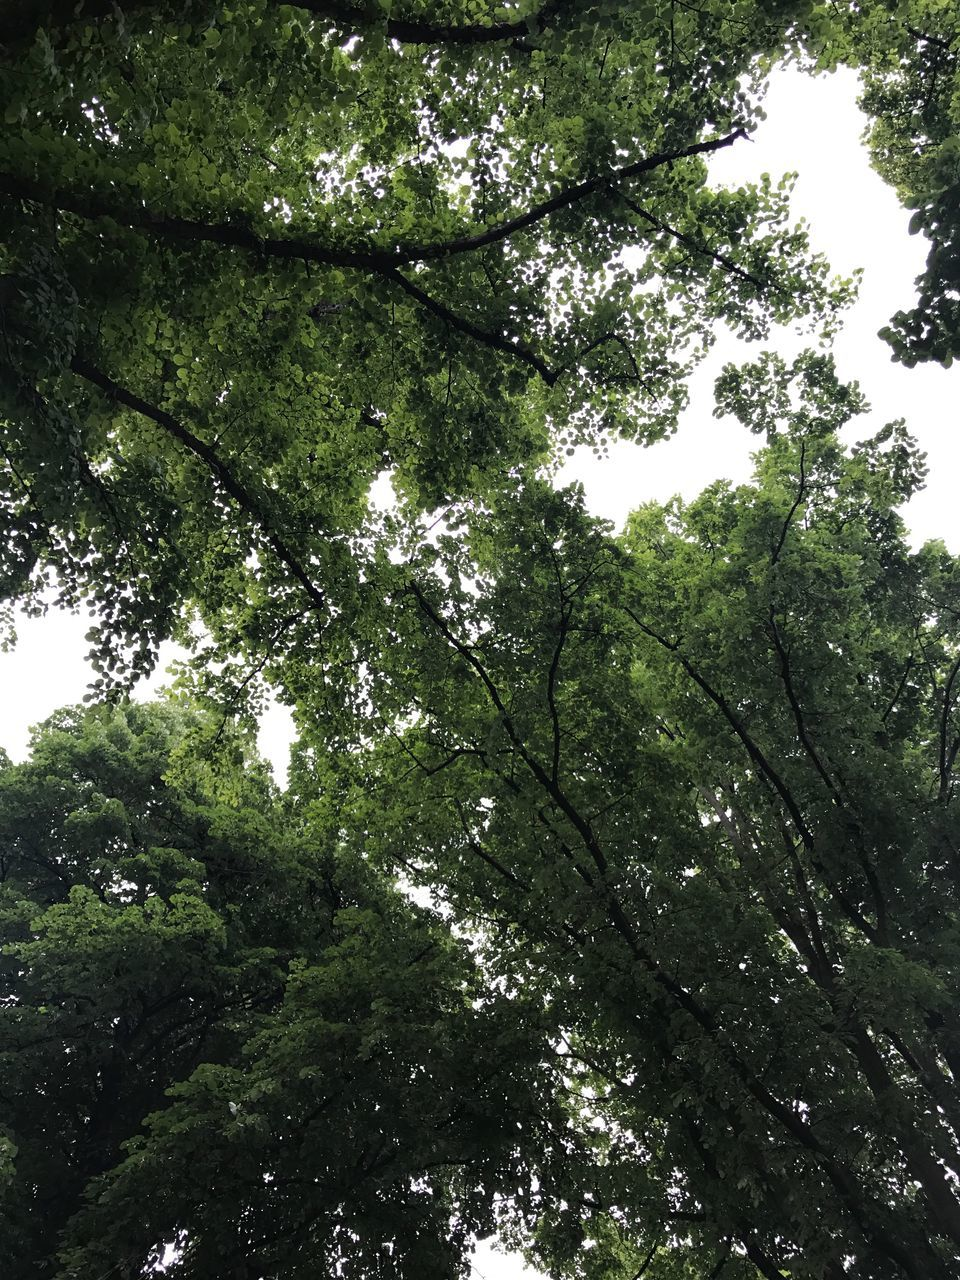 tree, low angle view, growth, nature, branch, beauty in nature, no people, green color, outdoors, day, tranquility, forest, sky